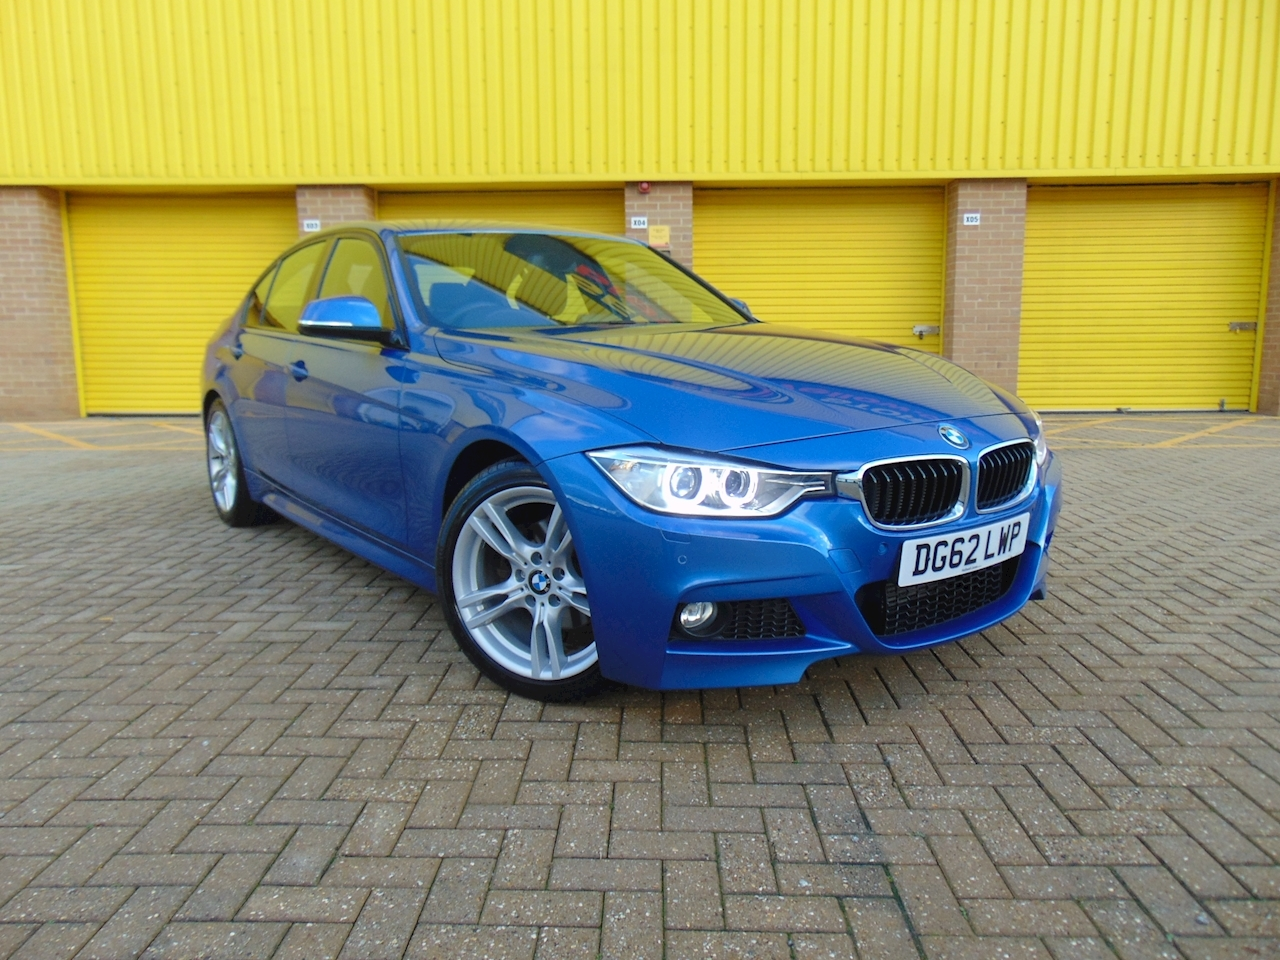 Used Bmw 318D M 318D M Sport | Car Imports Direct Ltd t/a